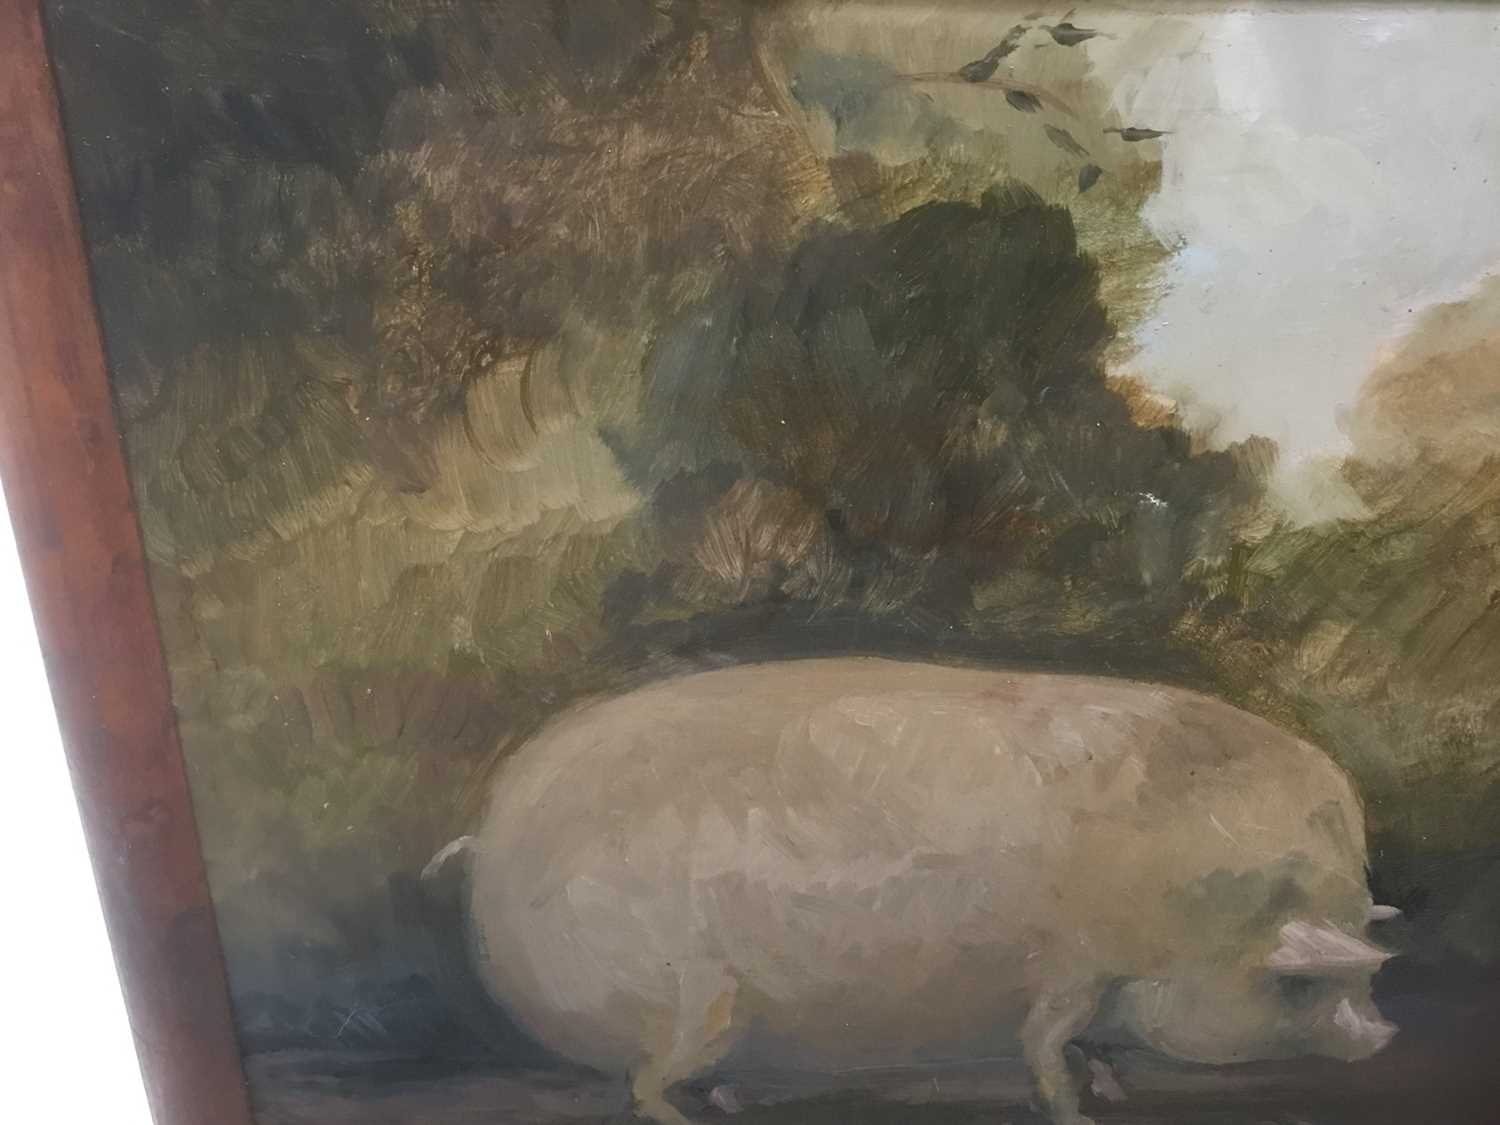 English School, oil on board, Portrait of a pig, indistinctly signed and dated, 20 x 25cm, framed - Image 7 of 7